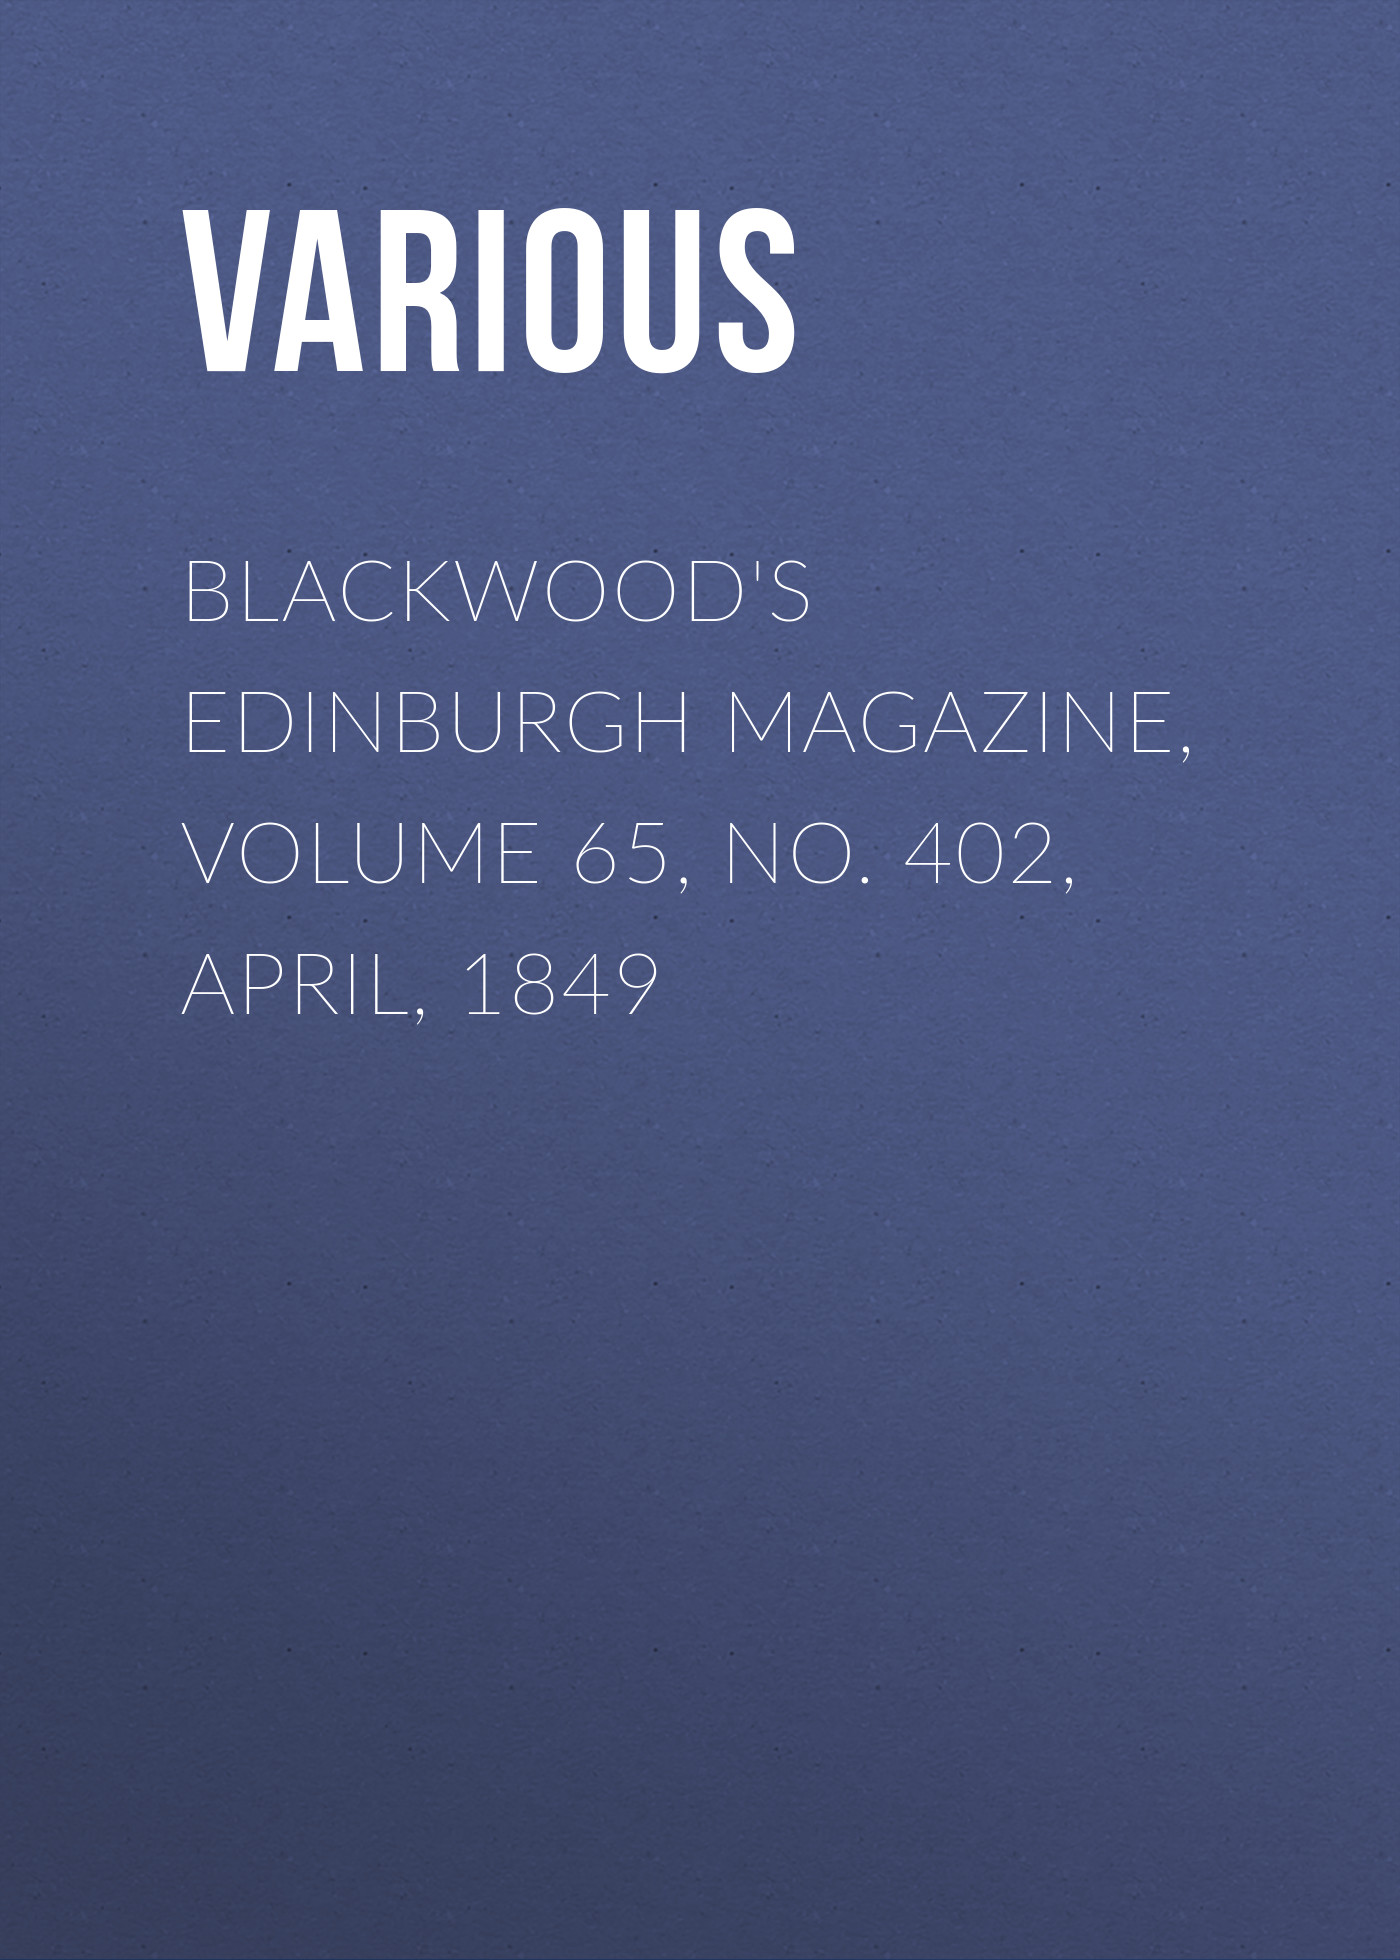 лучшая цена Various Blackwood's Edinburgh Magazine, Volume 65, No. 402, April, 1849